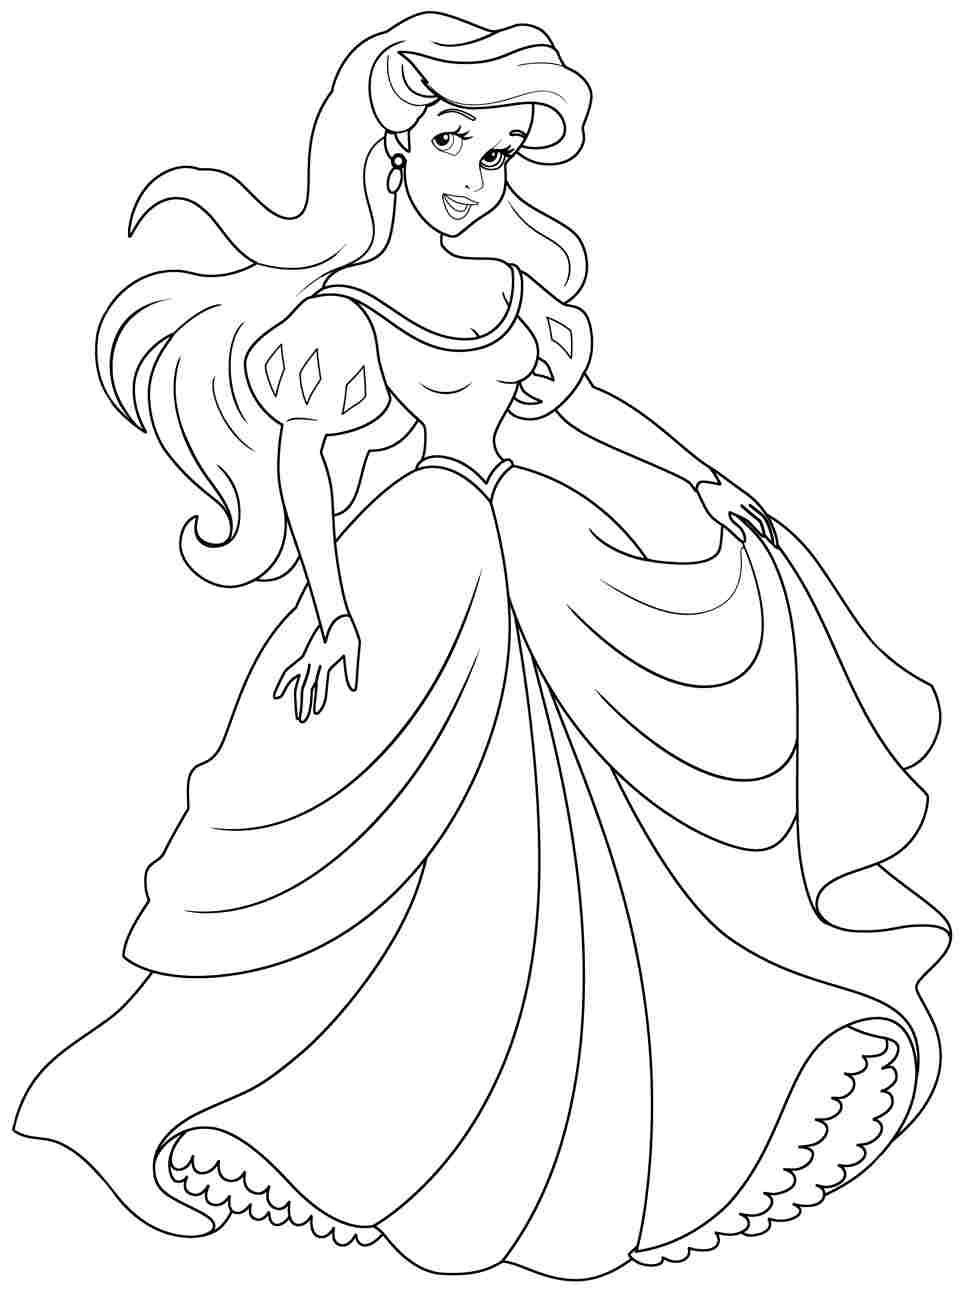 young Princess coloring pages Google Search (With images